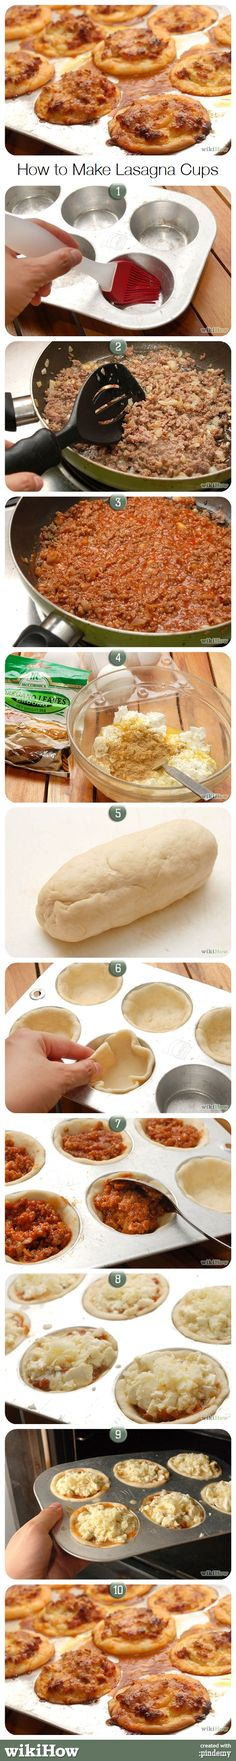 How to Make Lasagna Cups -- these would be good at a party.